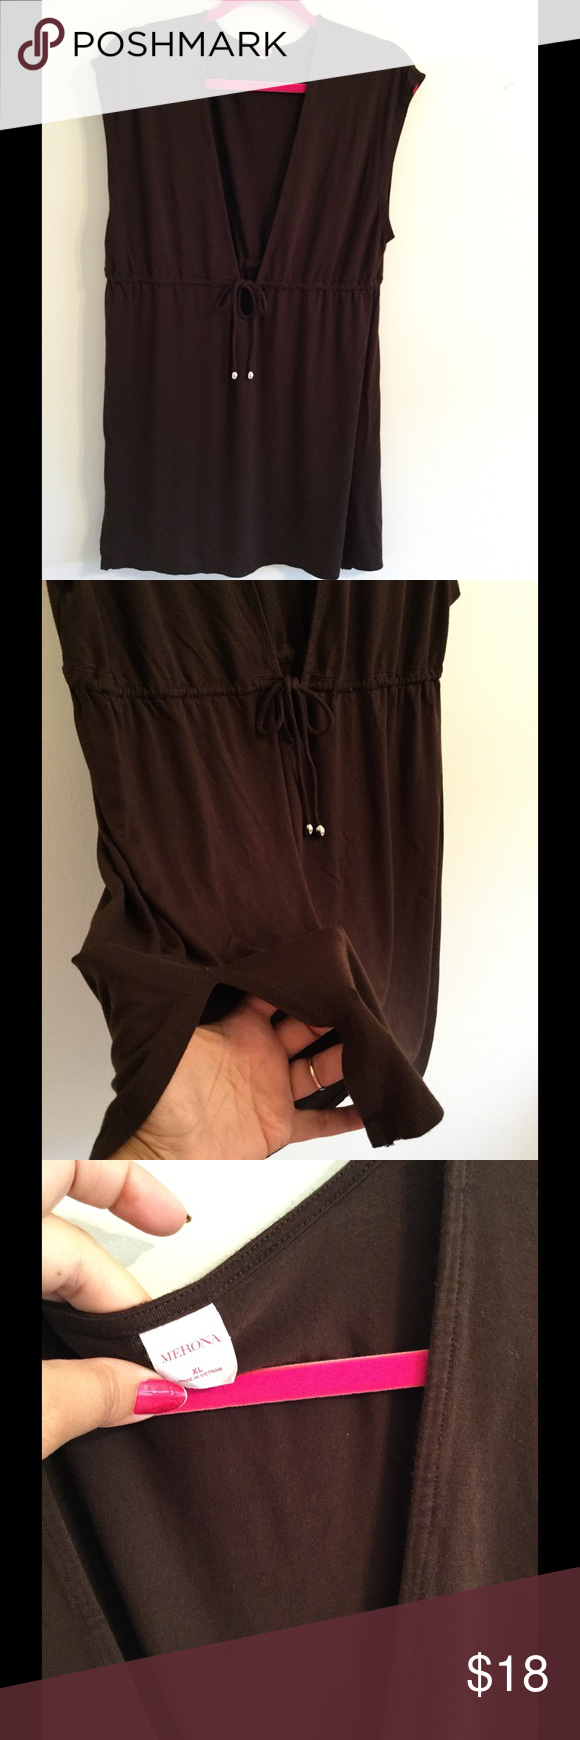 Merona NWOT Brown Swimsuit Cover up in XL Mid thigh brown cover up with small slits on the side in an XL Merona Swim Coverups